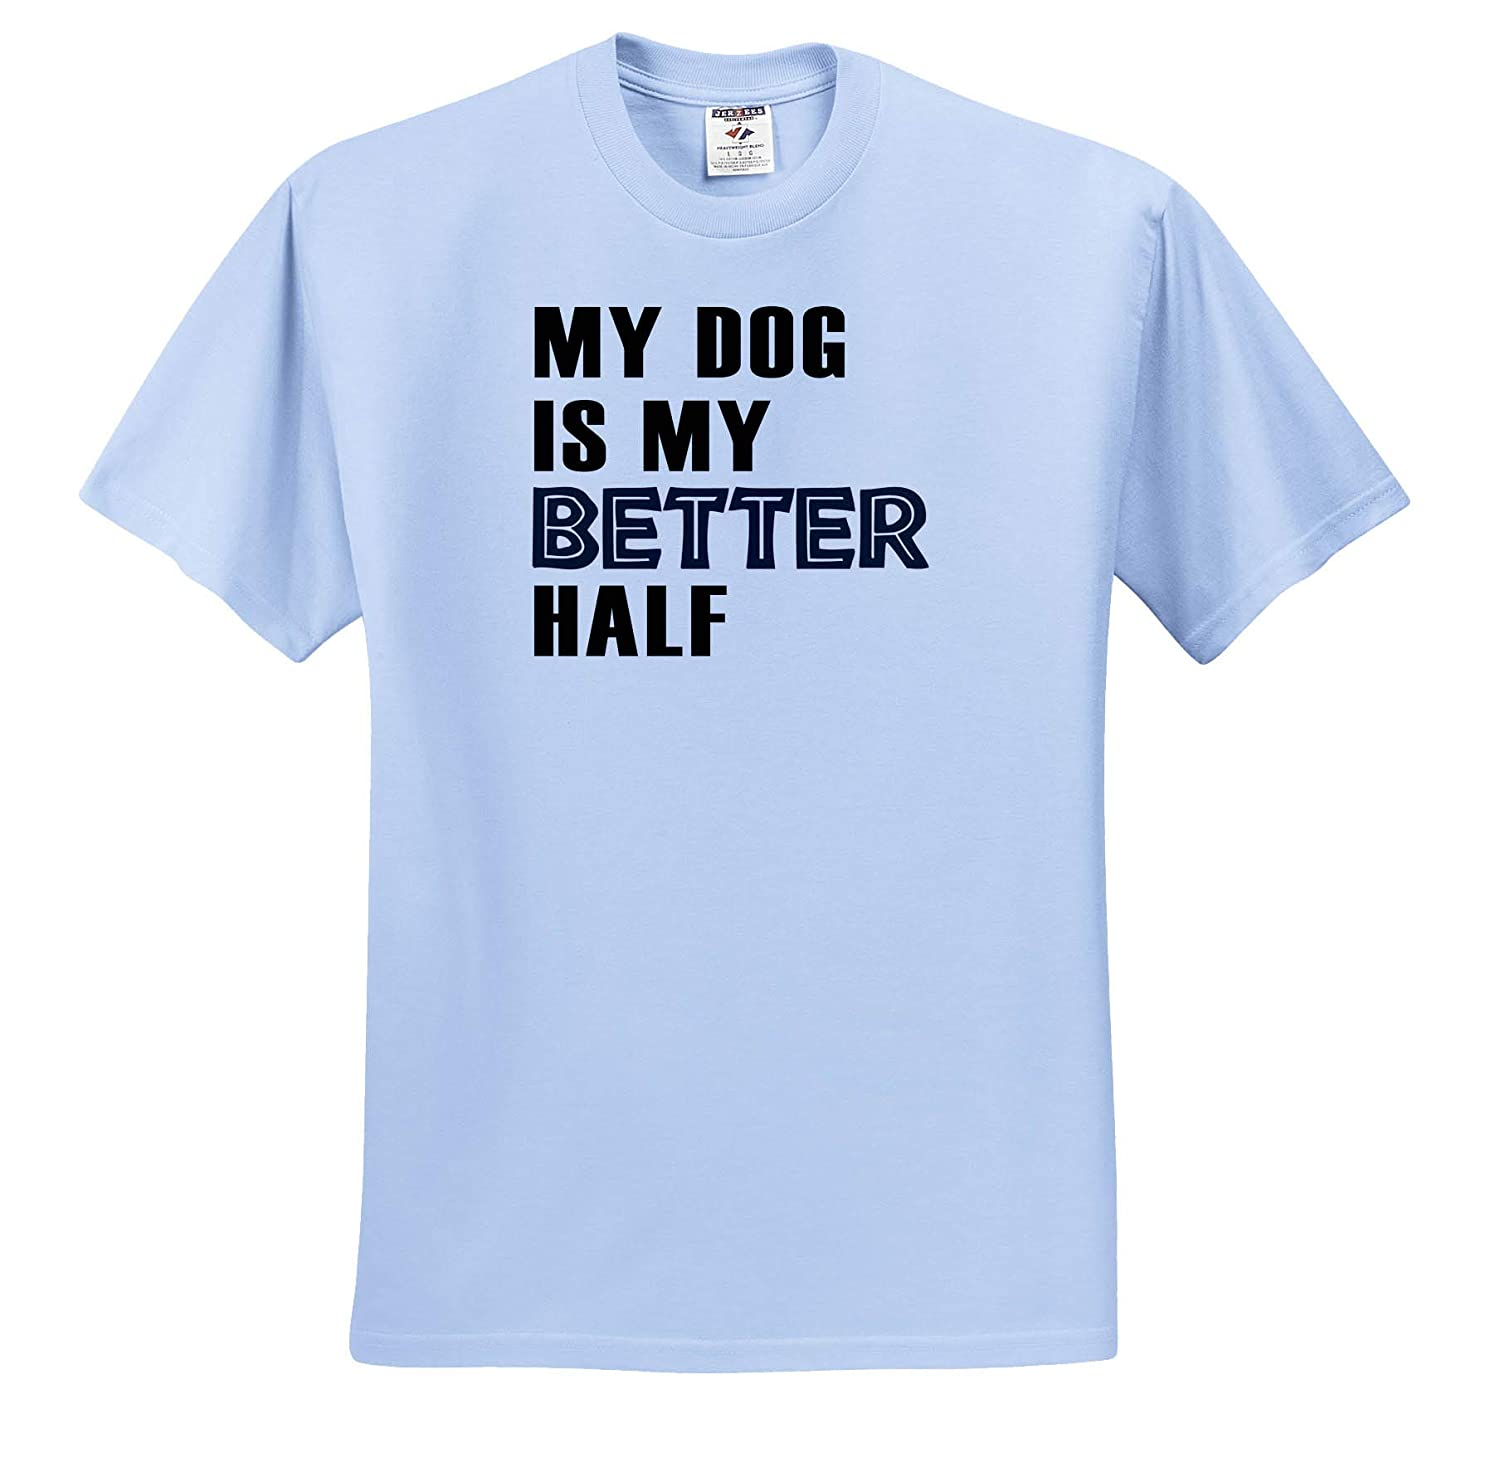 3dRose Anne Marie Baugh My Dog is My Better Half ts/_319232 Adult T-Shirt XL Quotes and Sayings